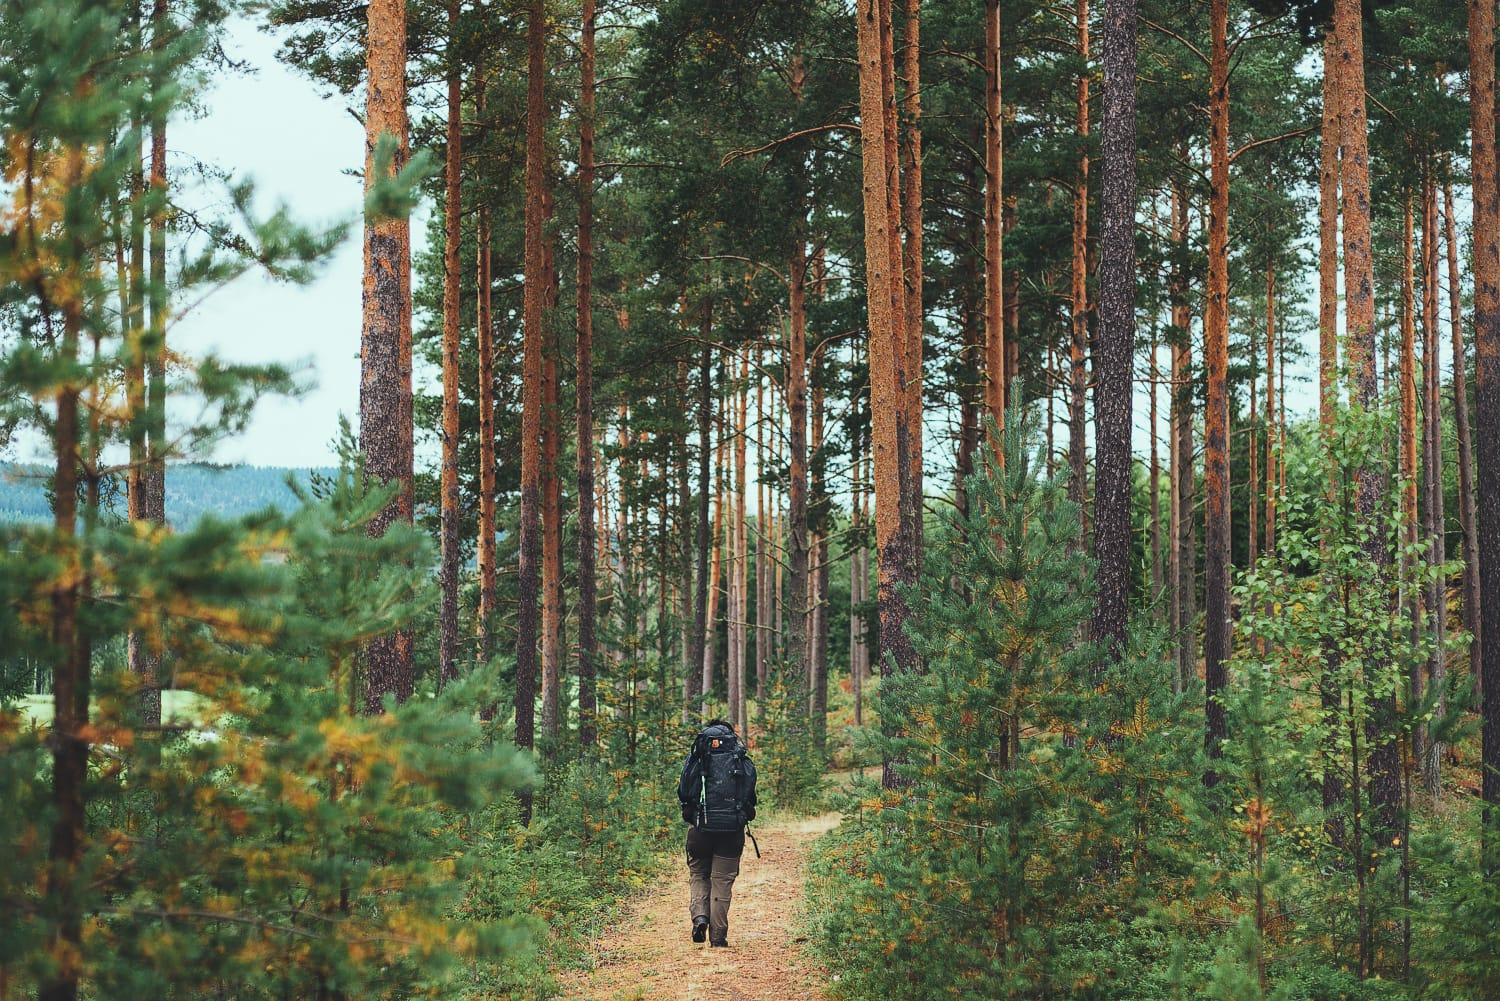 hiker walking through a forest in Sweden